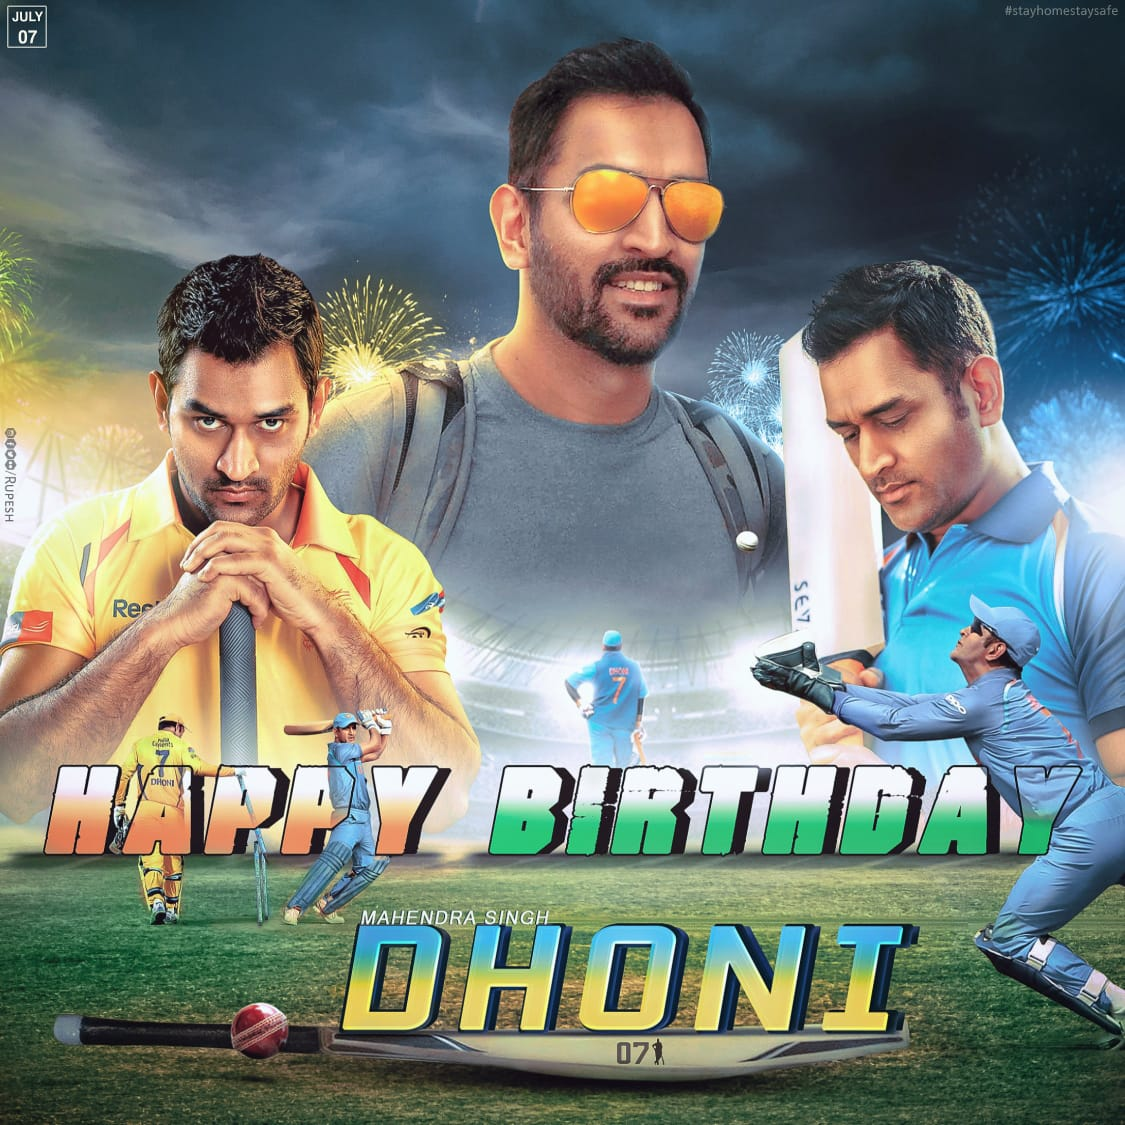 HapPy Birthday to the coolest and one of the most successful Captain in the Indian Cricket History.  One of the finest cricketer ever   #HappyBirthdayMSDhoni  #ThalaDhoni  #Dhonipic.twitter.com/n538bssR1N